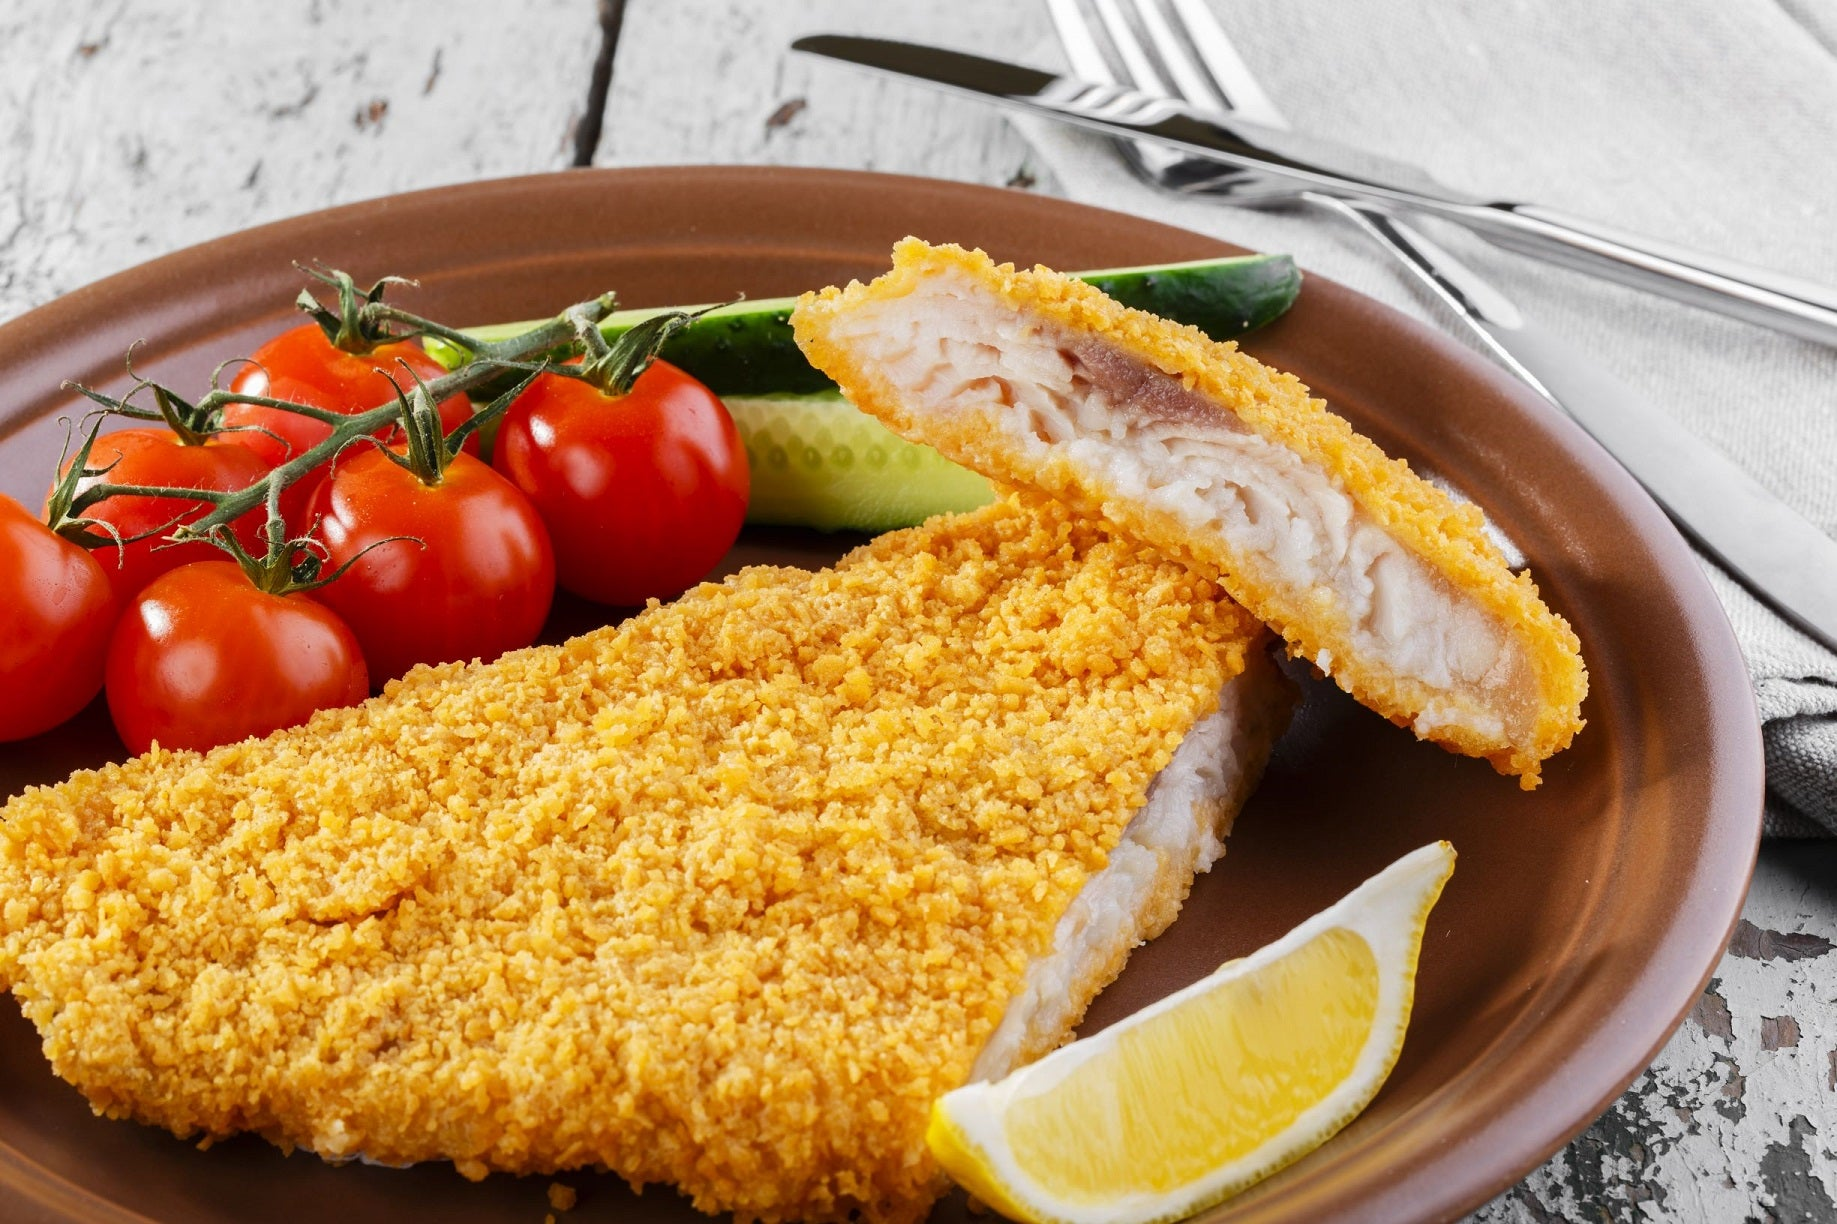 Toppits Frozen Lemon Seasoned Sole Fillets 3.60 oz Portion Gluten Free - 44 Pack [$2.27/fillet]